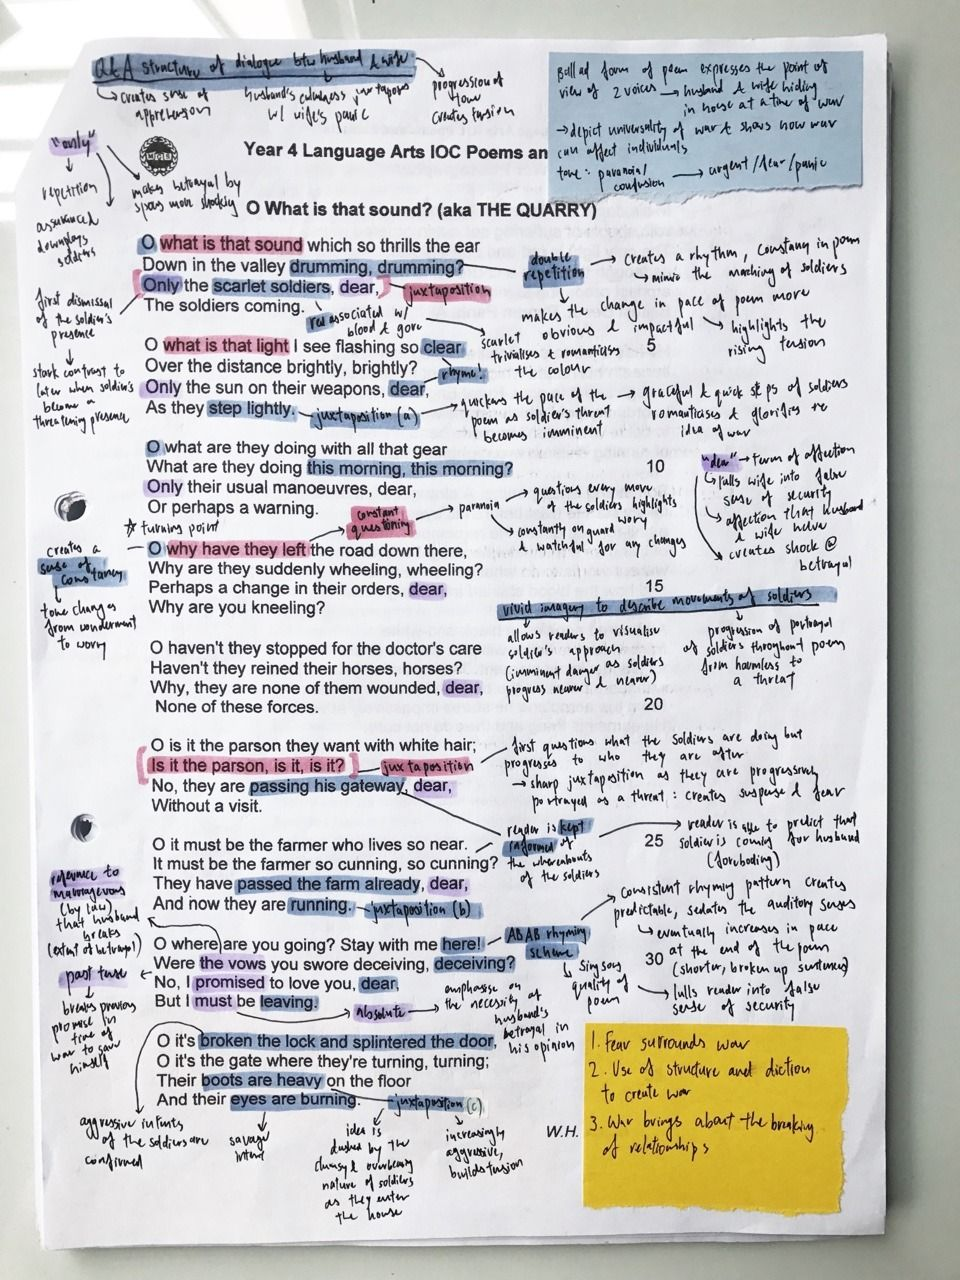 Poetry Annotation Never Heard Of Her And Ye There S A Method To The Madnes Drop Me Message If You Want K School Study Tip Note Hard Raven Poem Annotated